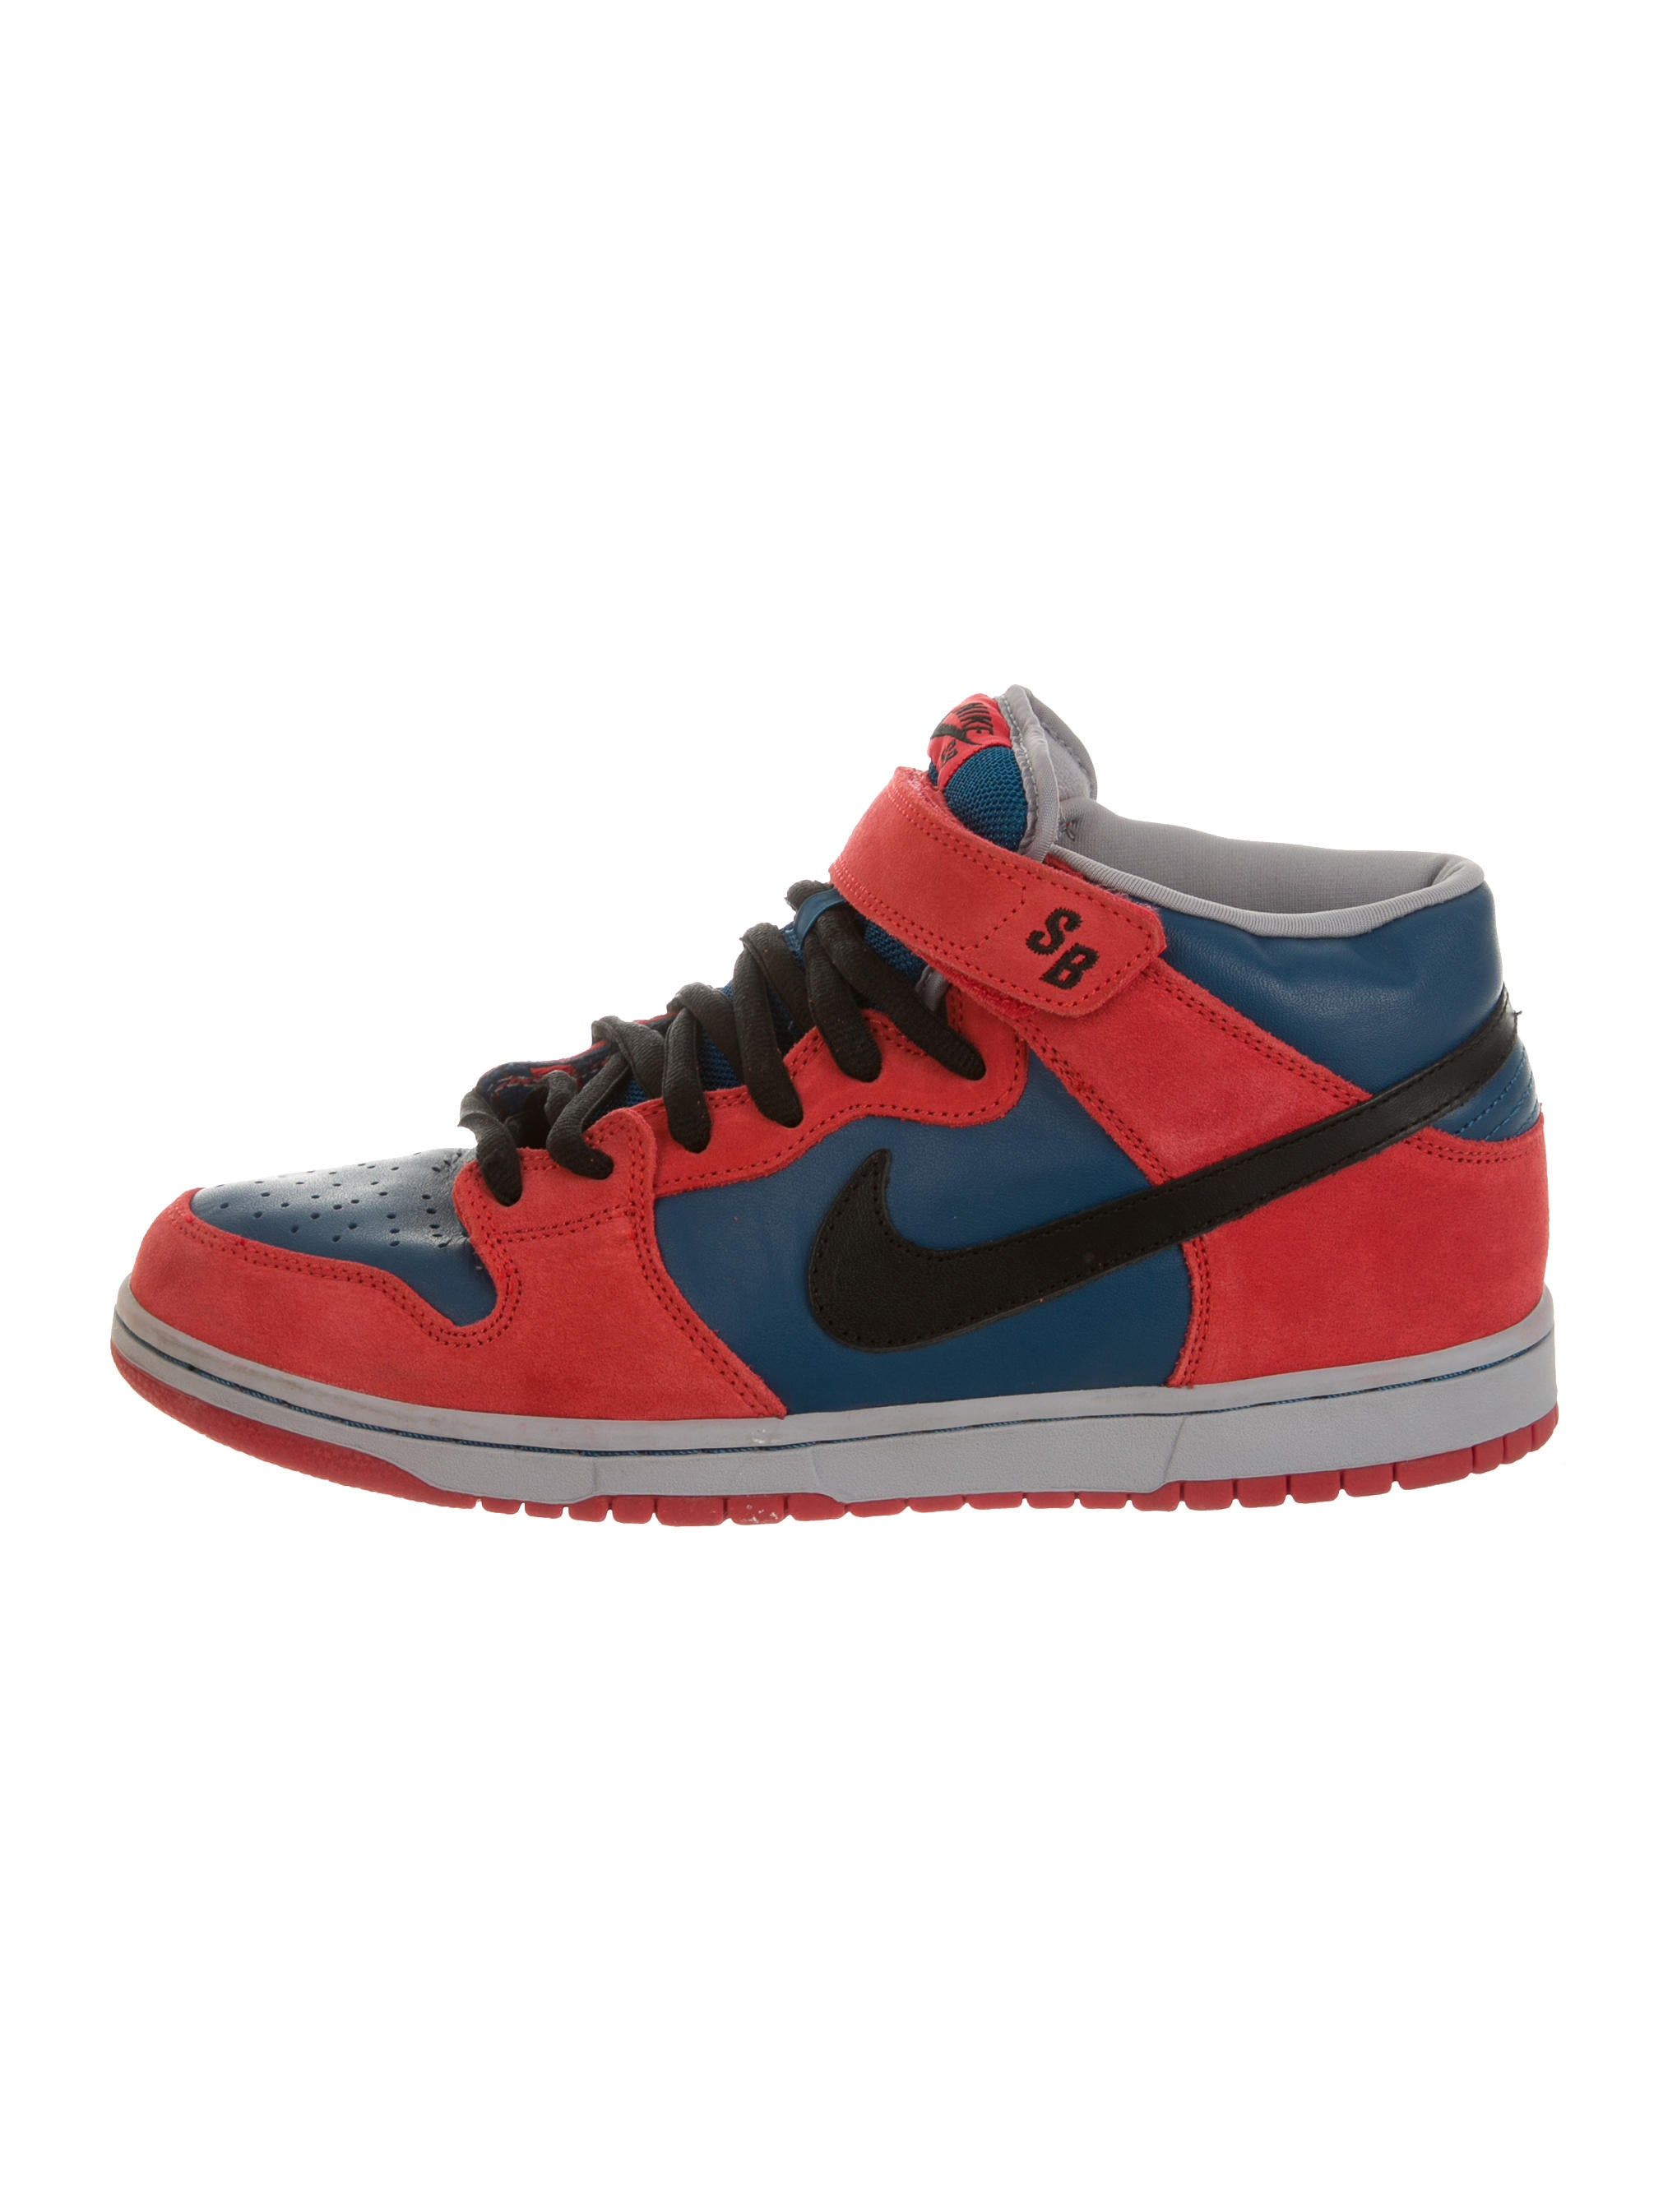 ... max 90 id red allegro Spin the Bottle. nike dunk light up soles shoes  for adults on sale 586716567